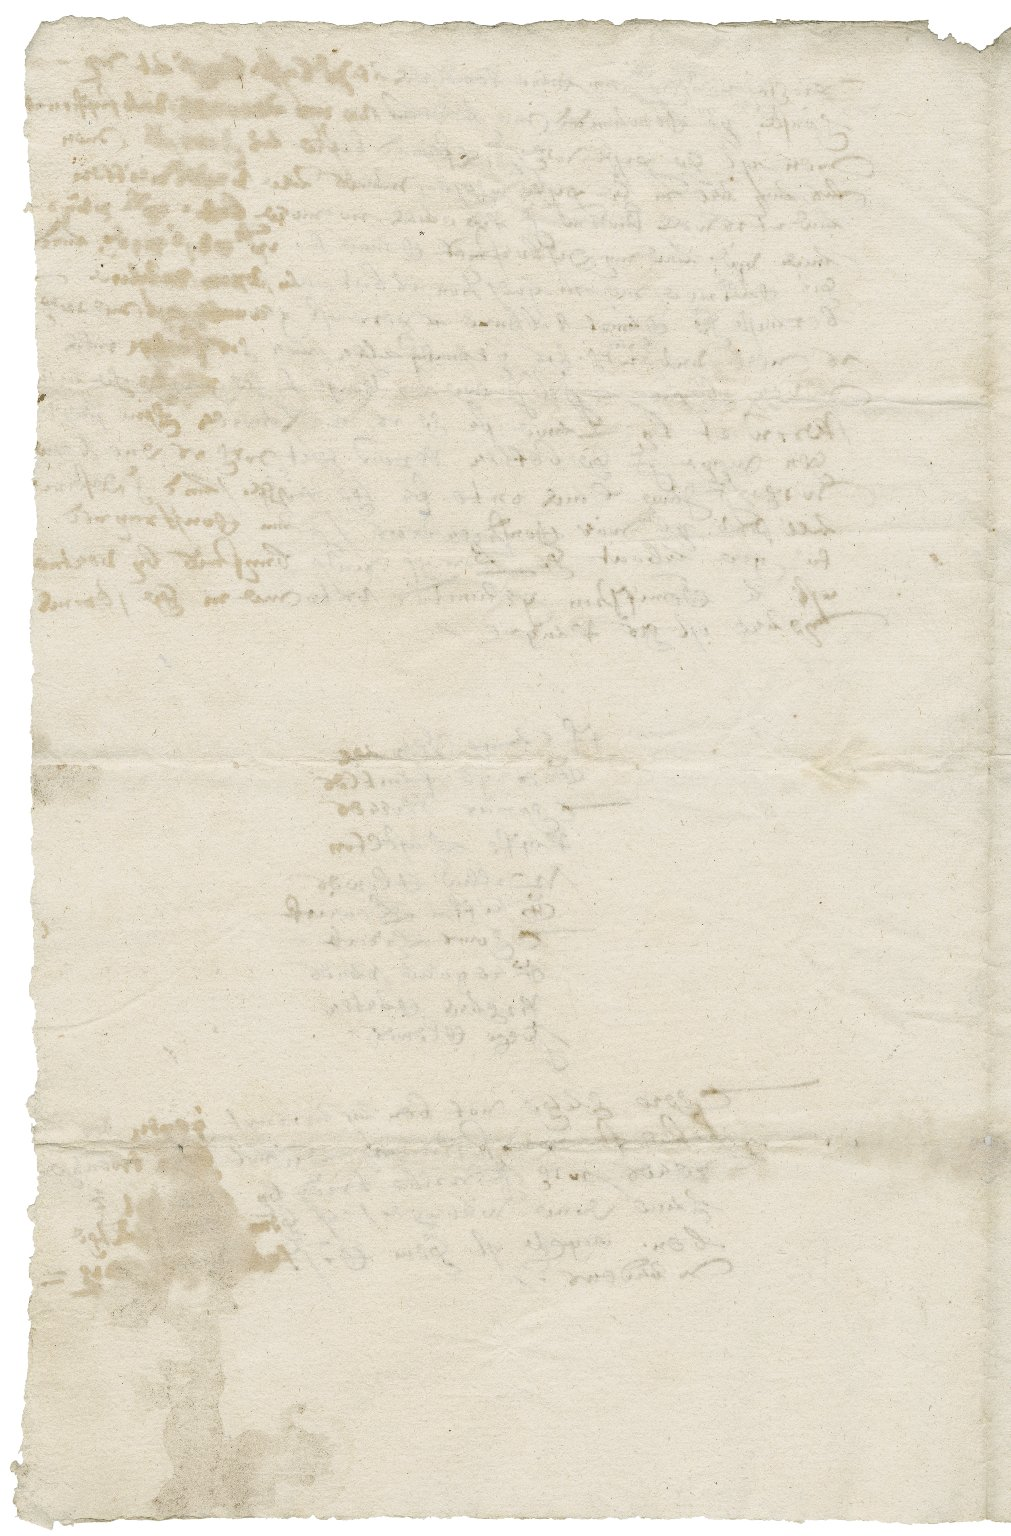 Letter from Powell to Walter Bagot